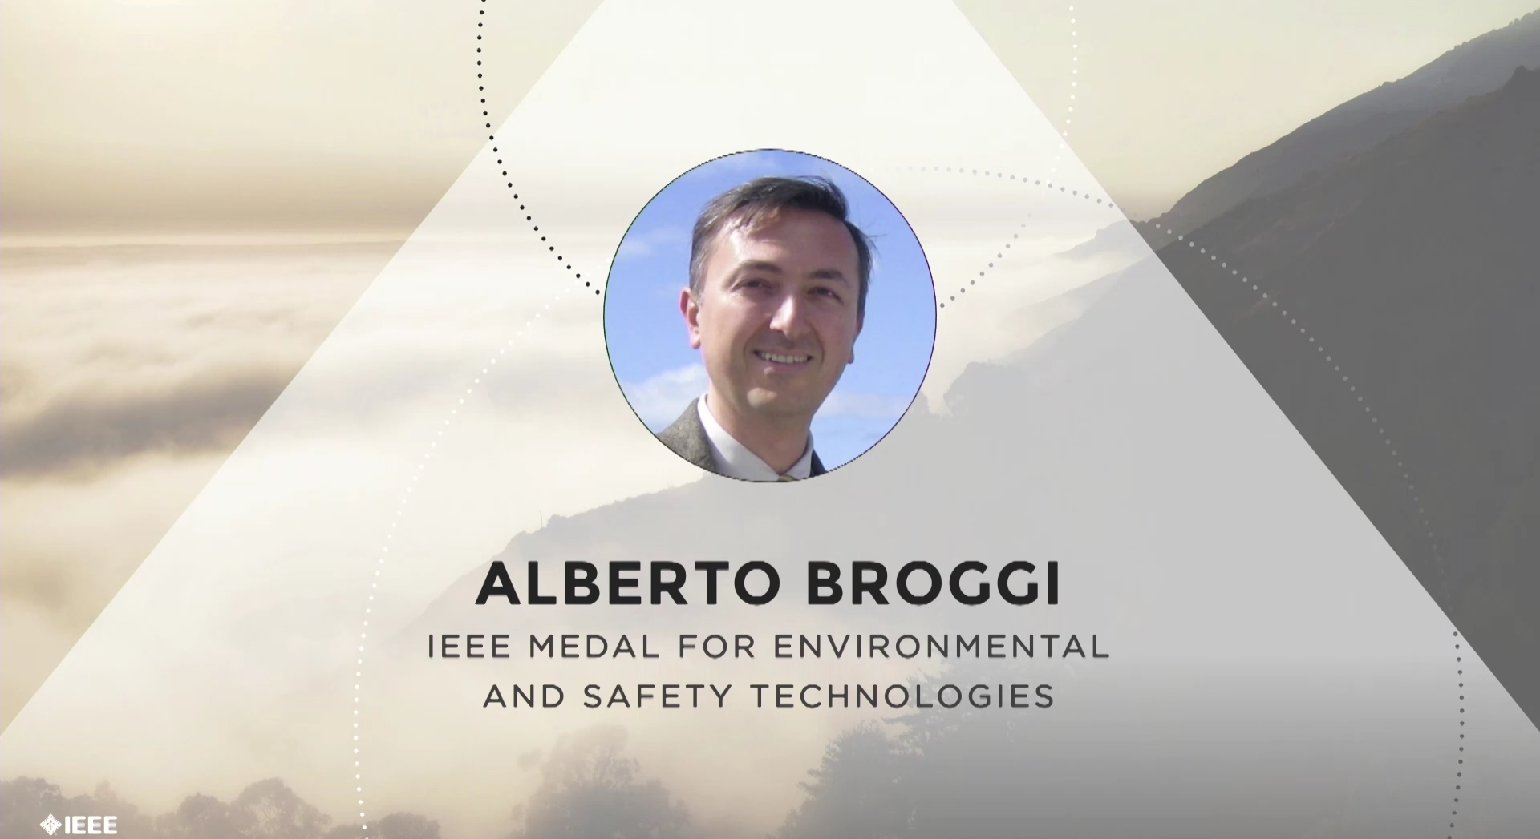 Alberto Broggi accepts the IEEE Medal for Environmental and Safety Technologies - Honors Ceremony 2017